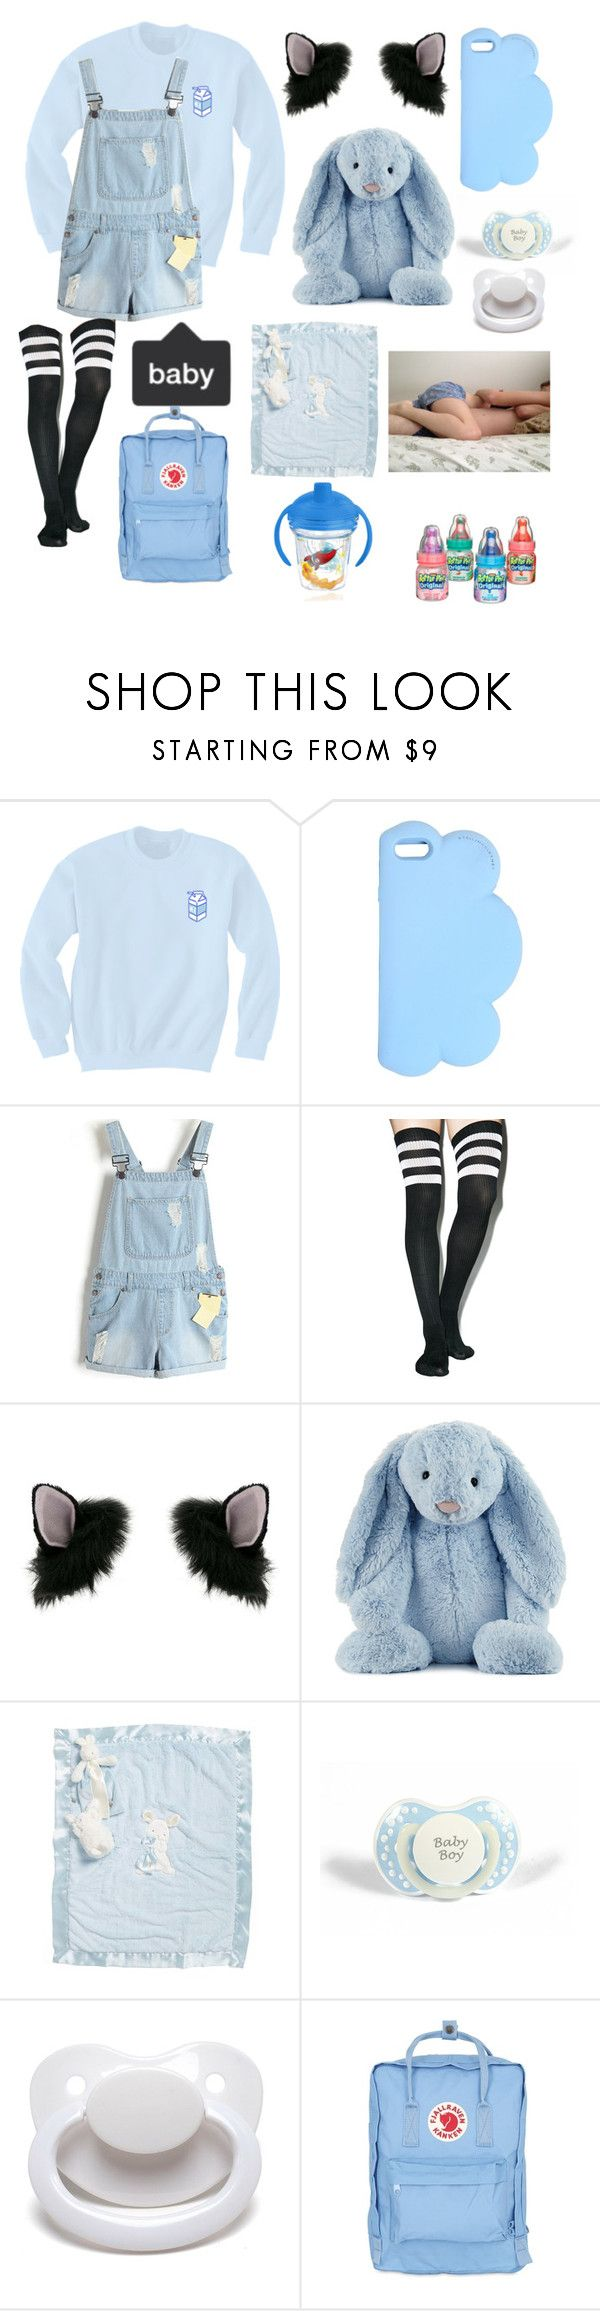 """""""baby boy // ddlb"""" by sadaiden ❤ liked on Polyvore featuring STELLA McCARTNEY, Leg Avenue, Miss Selfridge, Jellycat, Bunnies by the Bay, Fjällräven, Tervis, men's fashion and menswear"""